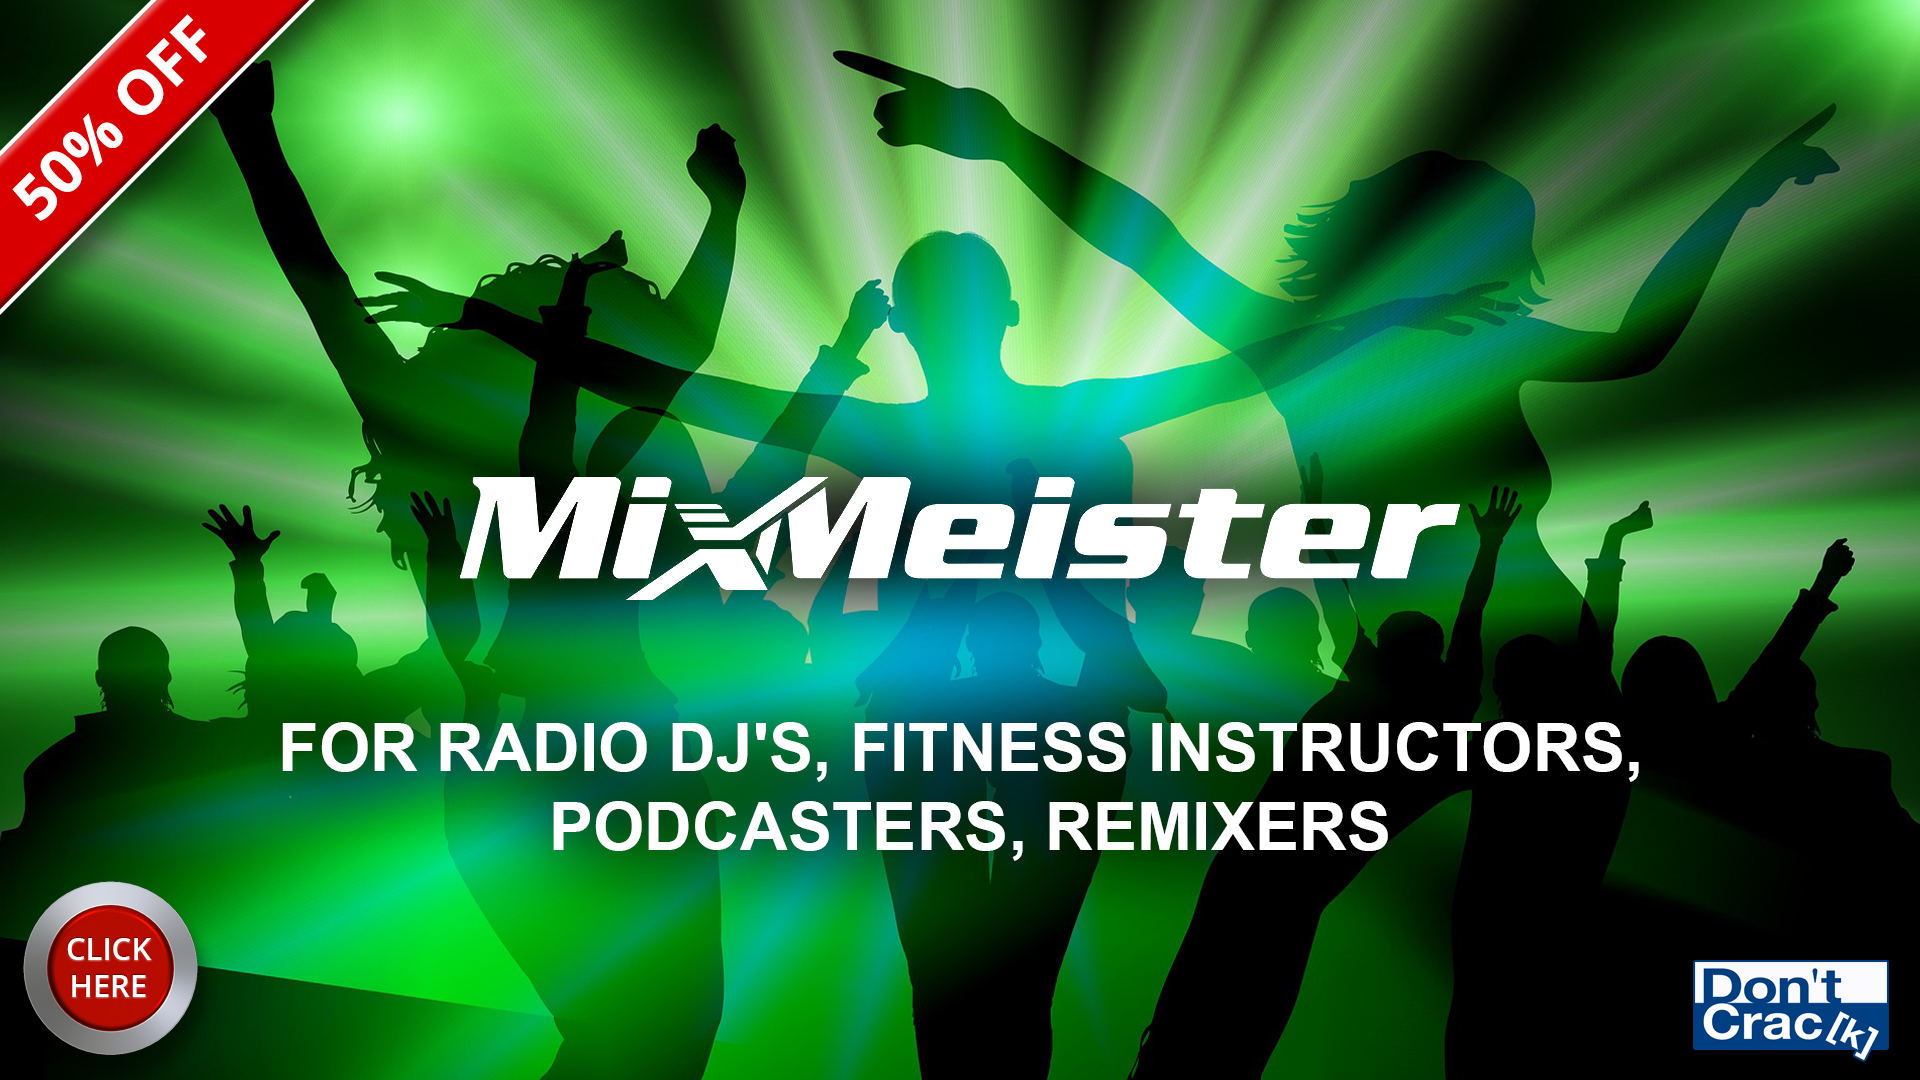 MixMeister